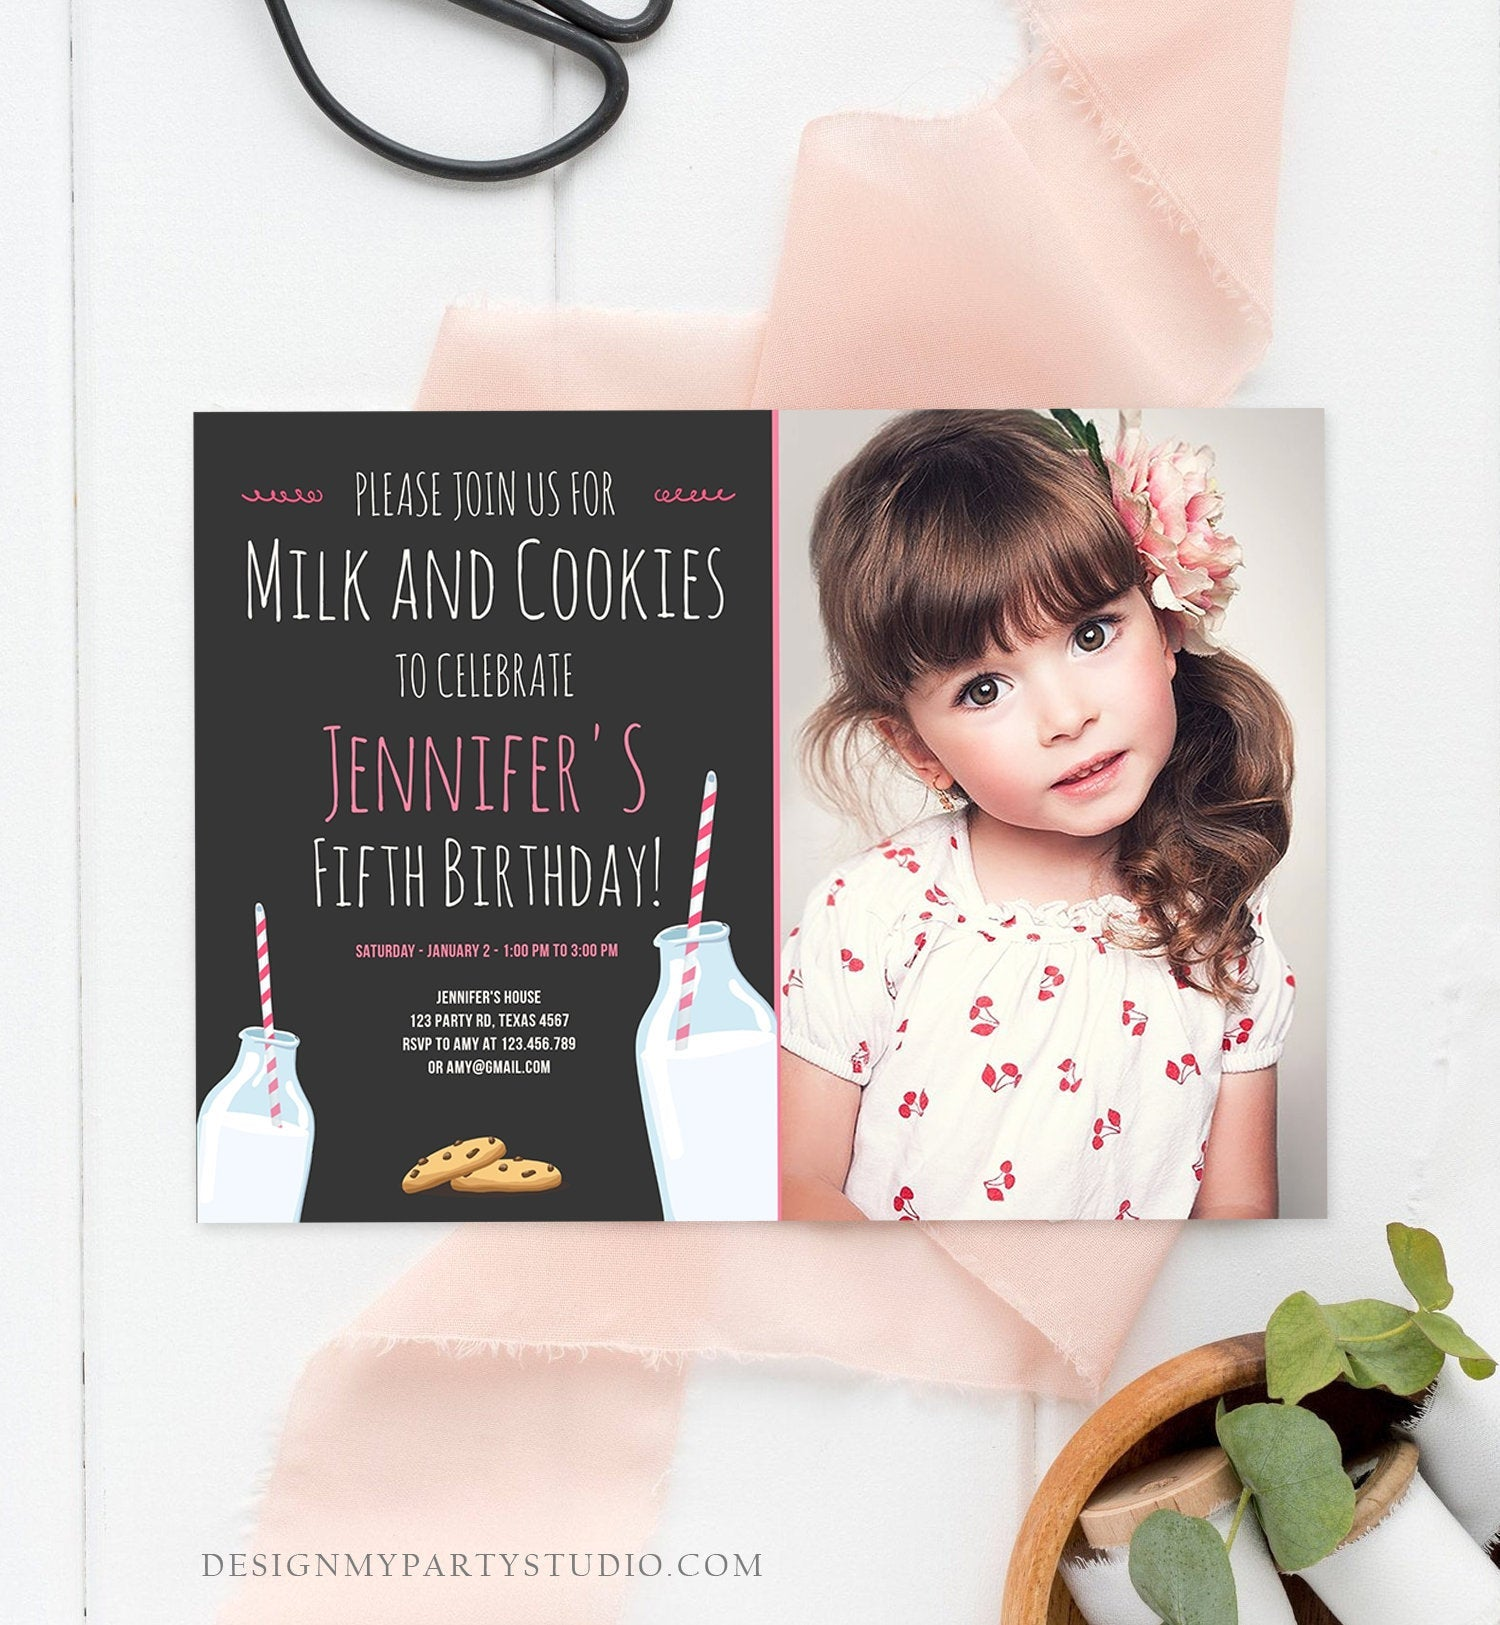 Editable Milk and Cookies Birthday Invitation Milk & Cookies Party Girl Pink Sweet Chocolate Chip Cookie Corjl Template Printable 0088